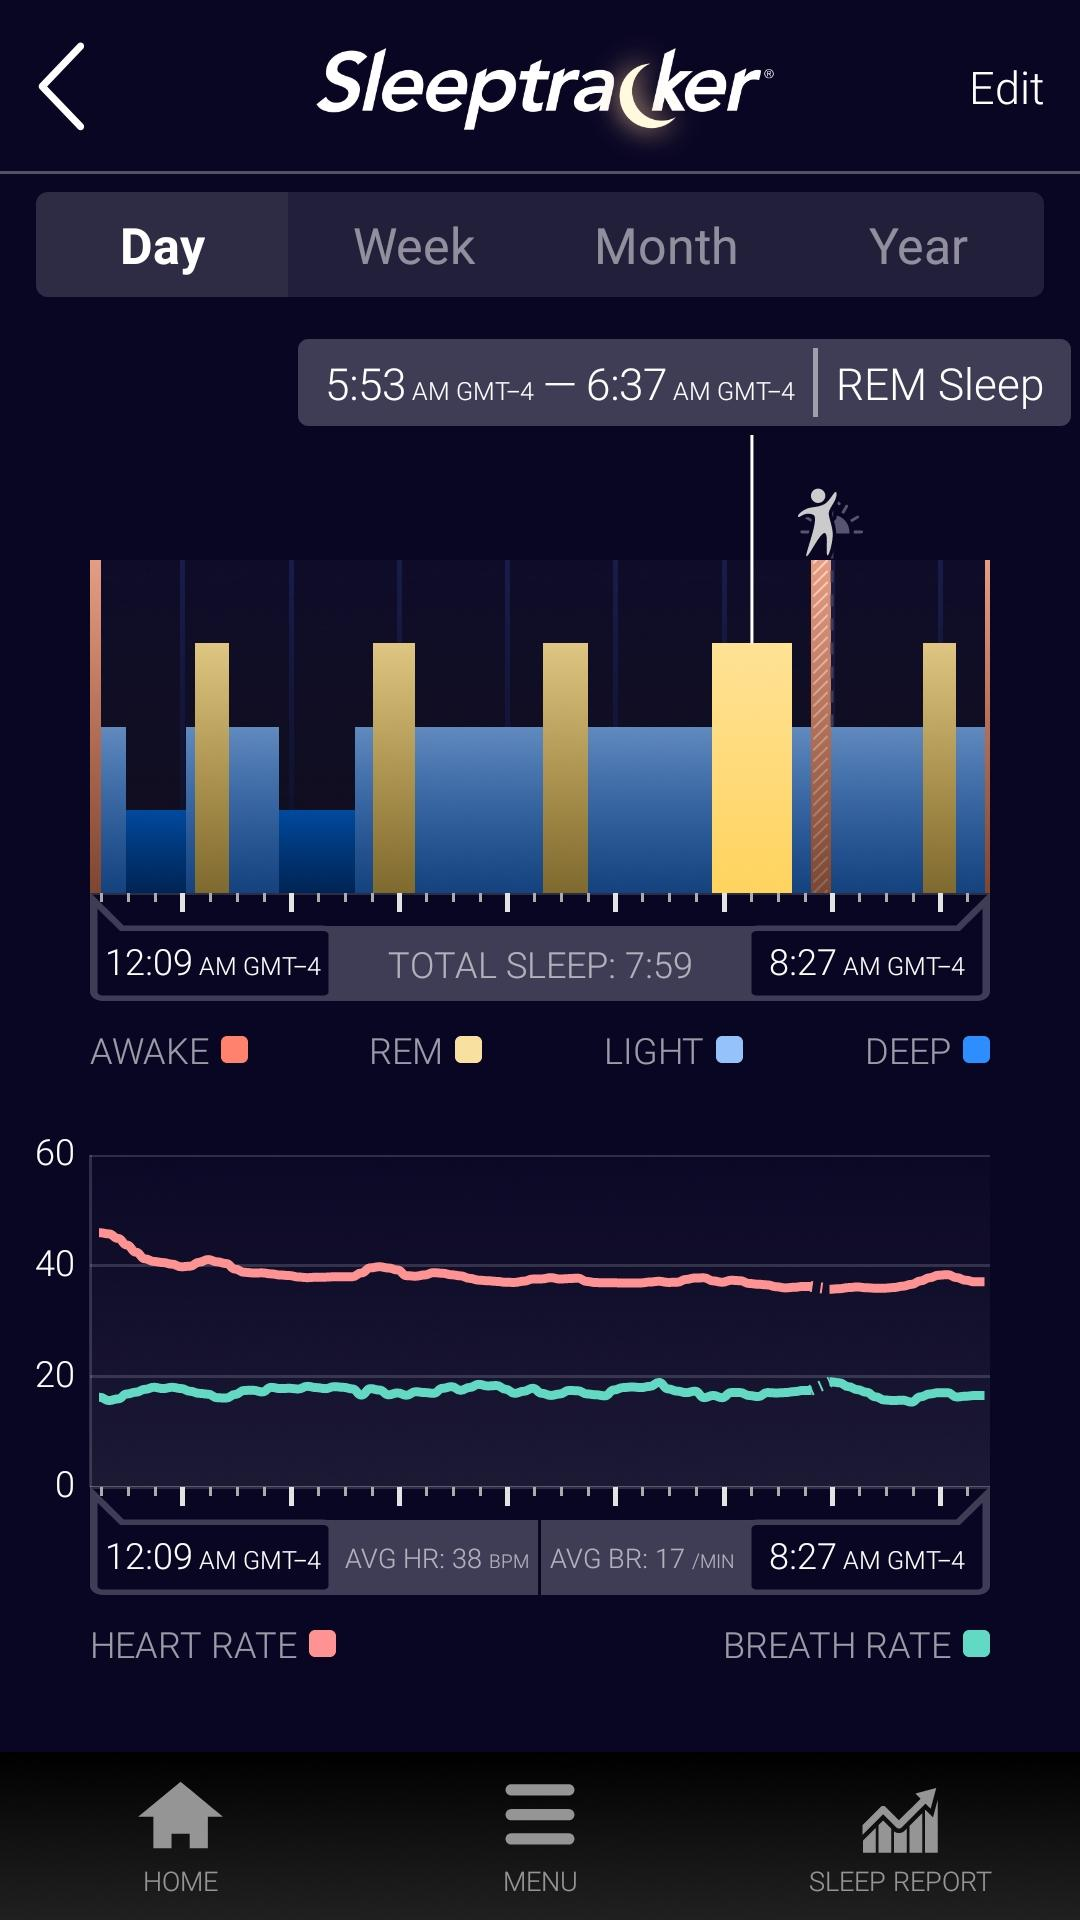 screenshot-20180819-082419-sleeptracker